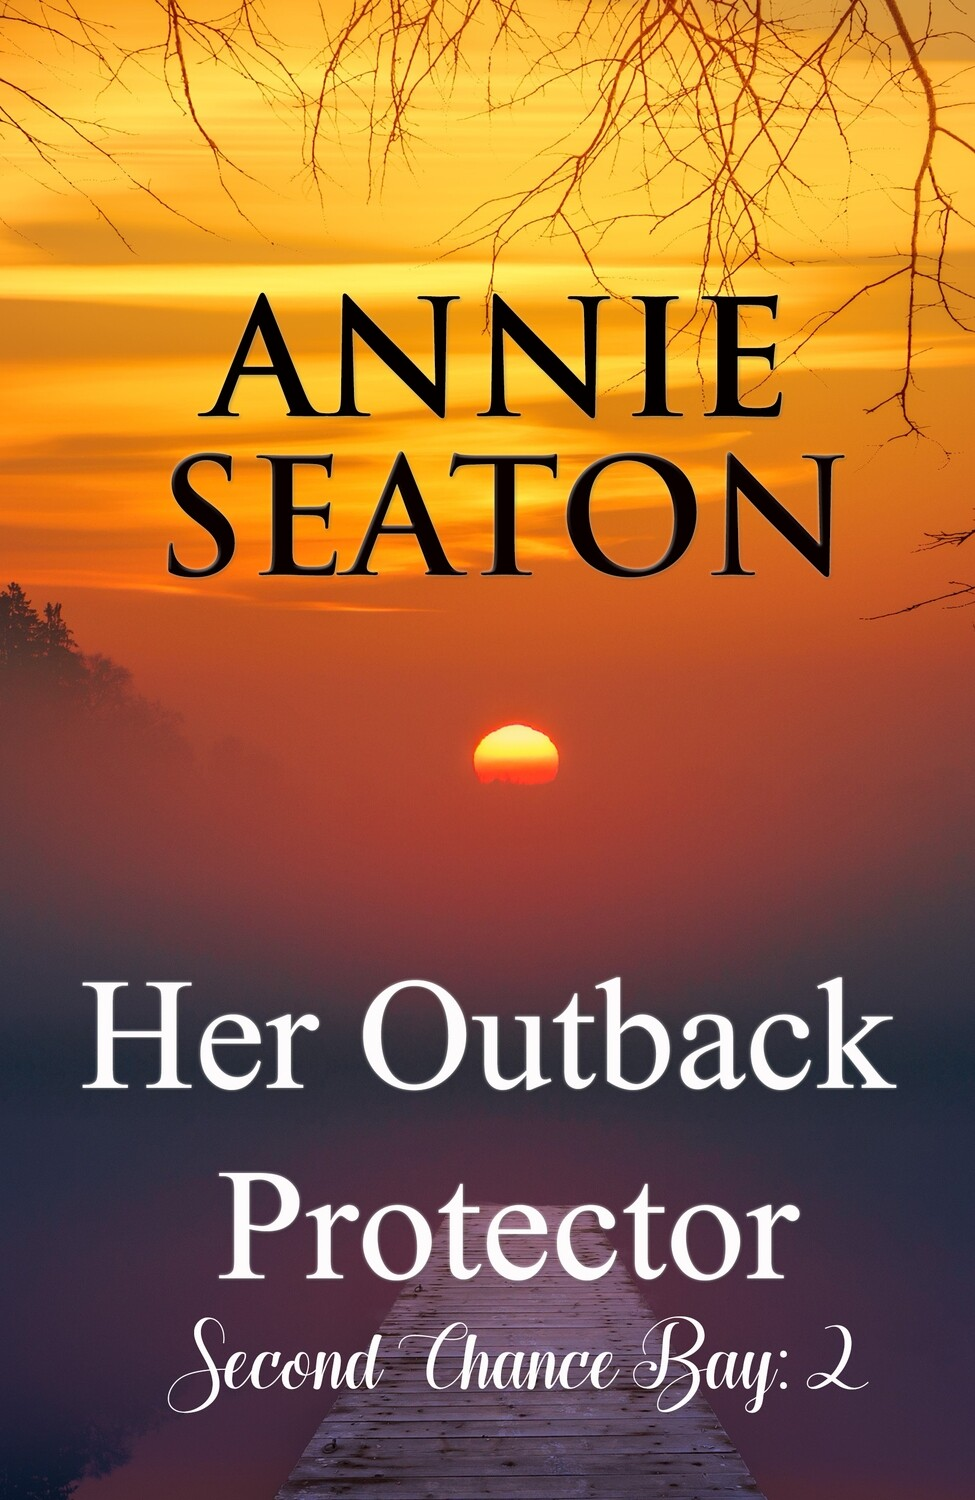 E Book: Her Outback Protector